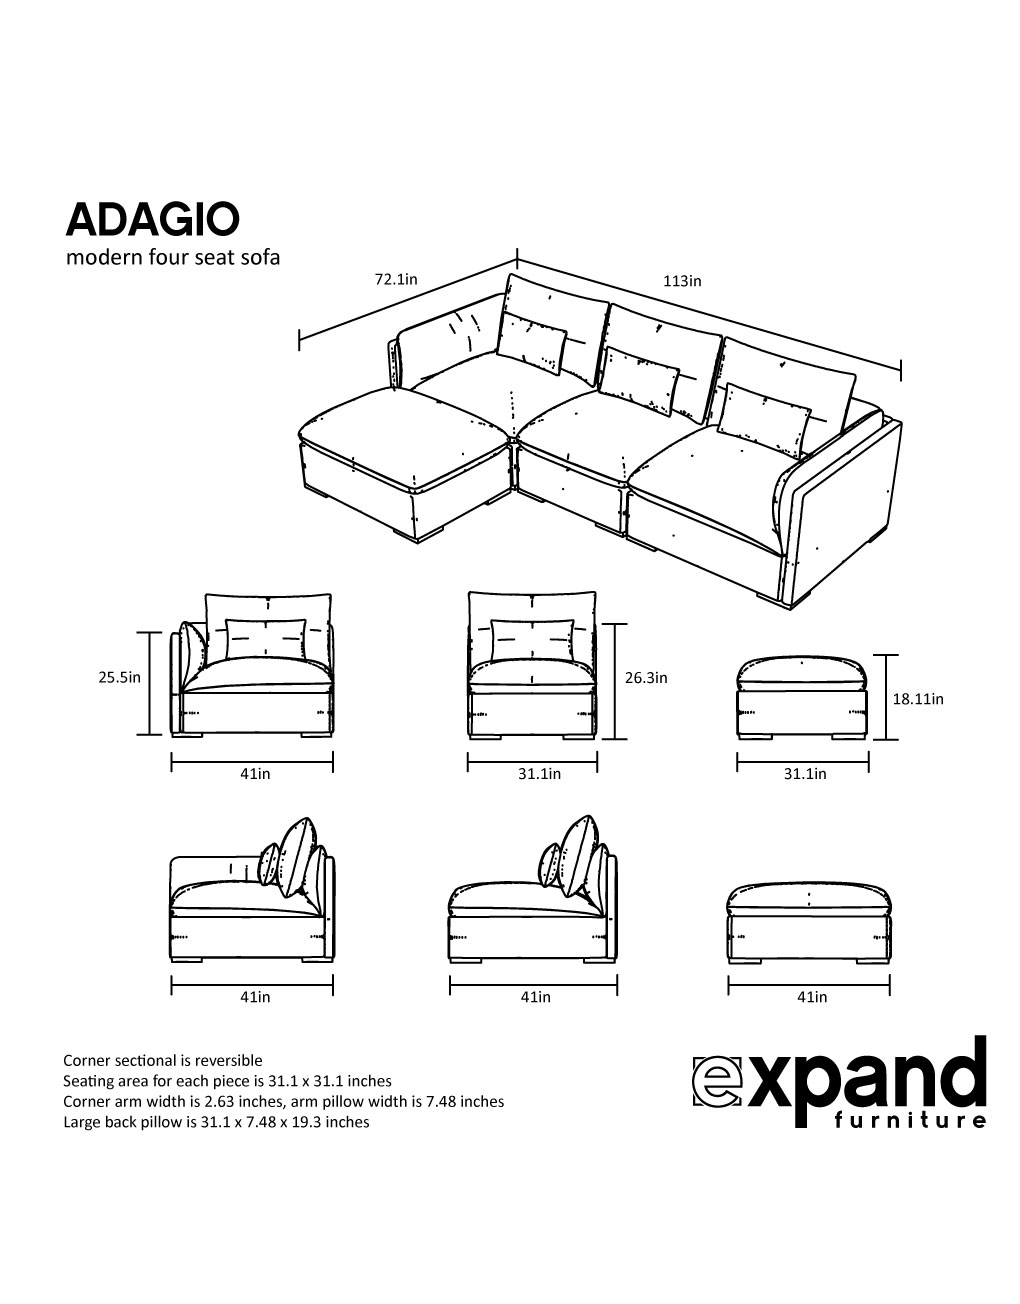 Adagio Luxury Sectional Modular Sofa Set Of 4 Expand Furniture Folding Tables Smarter Wall Beds E Savers